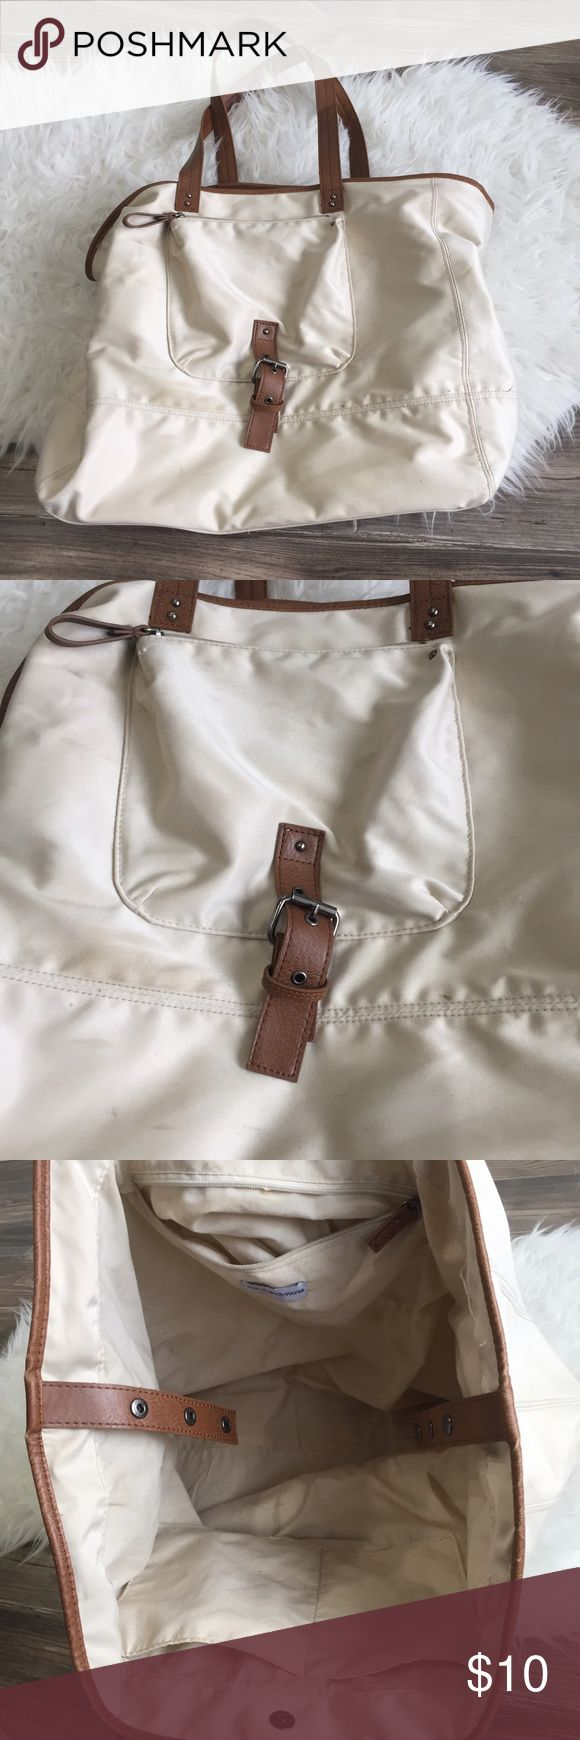 Cream Tote Bag Cream Tote Bag with Carmel brown accents - from bath and body works - gently used- has some light signs of wear but still lots of life left -works great as a purse, storage bag, grocery bag, etc- gently used condition Bags Totes